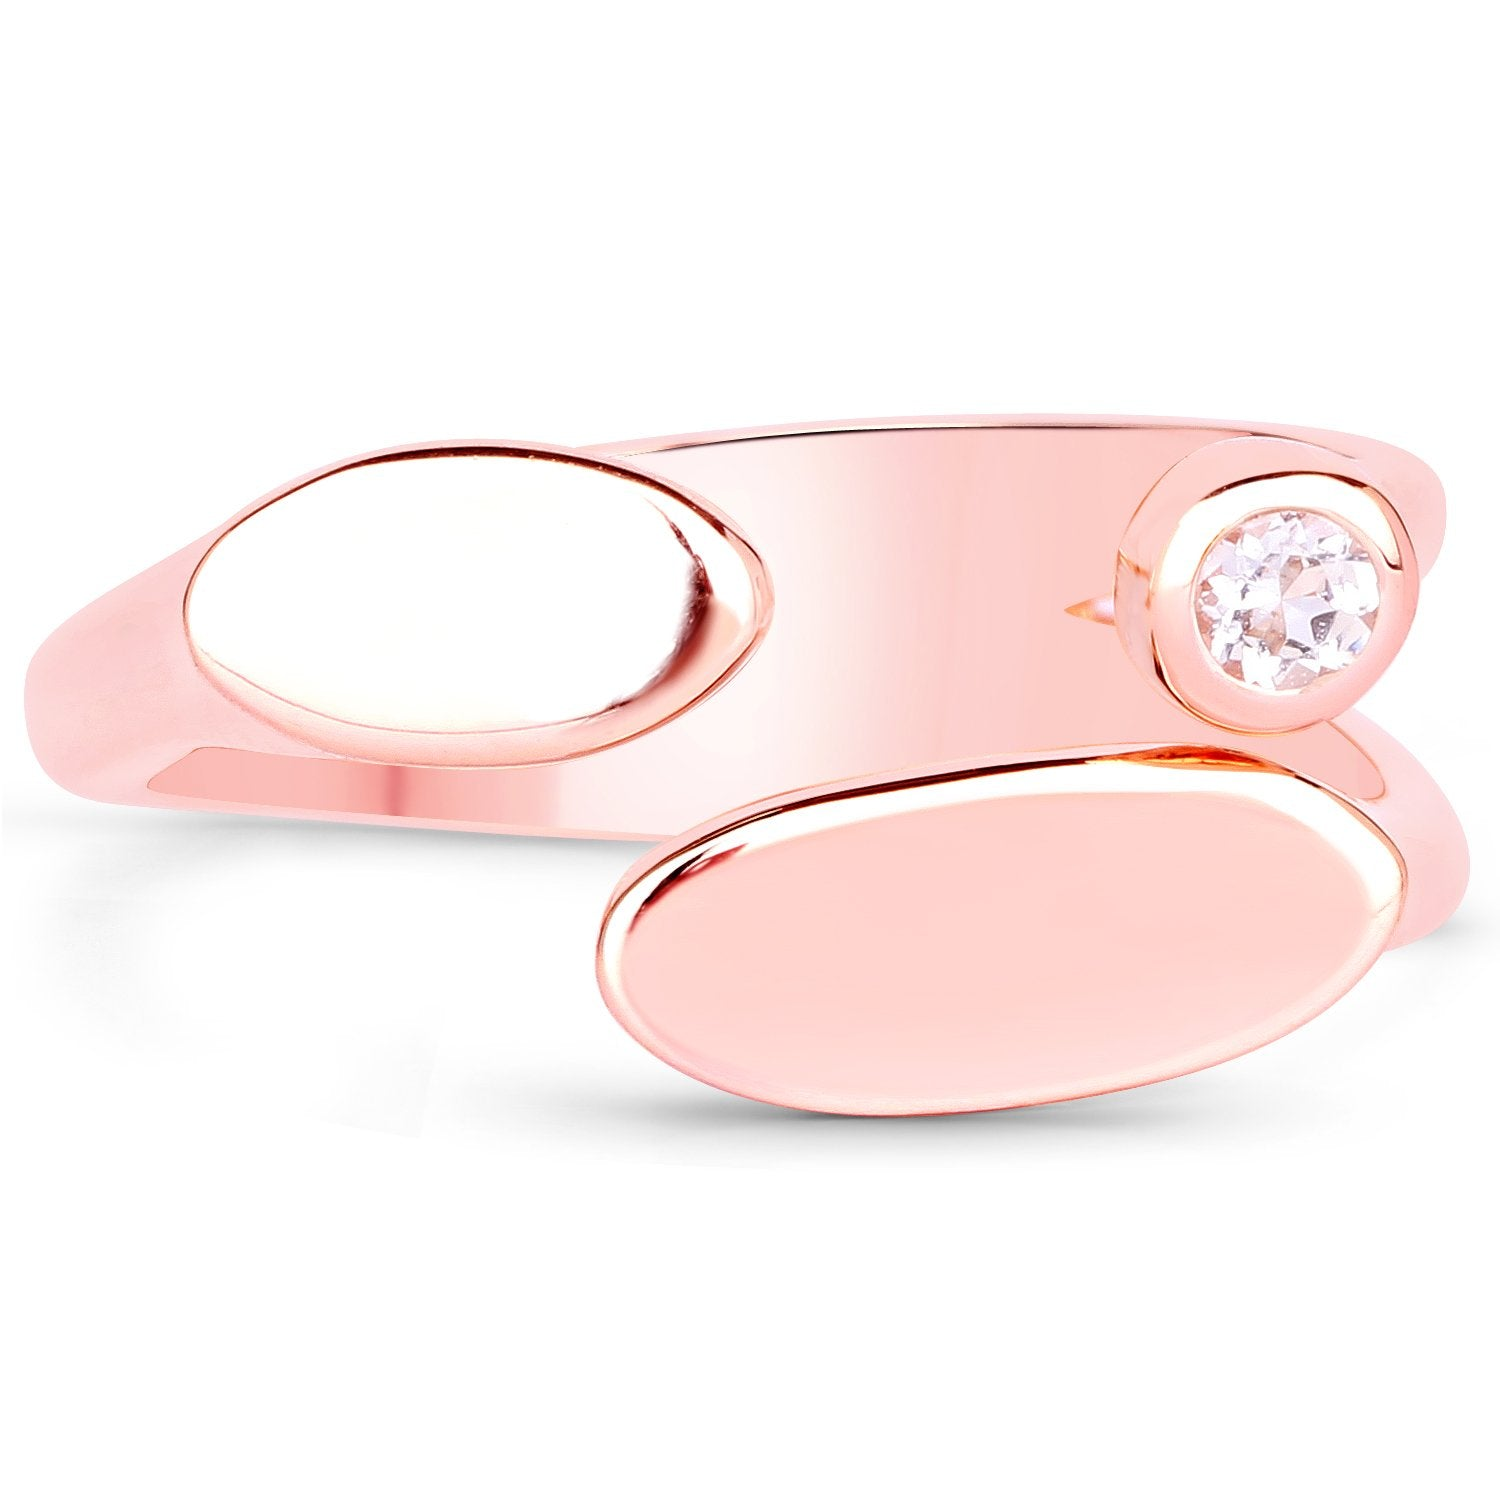 LoveHuang 0.05 Carats Genuine Morganite Minimalist Ring Solid .925 Sterling Silver With 18KT Rose Gold Plating